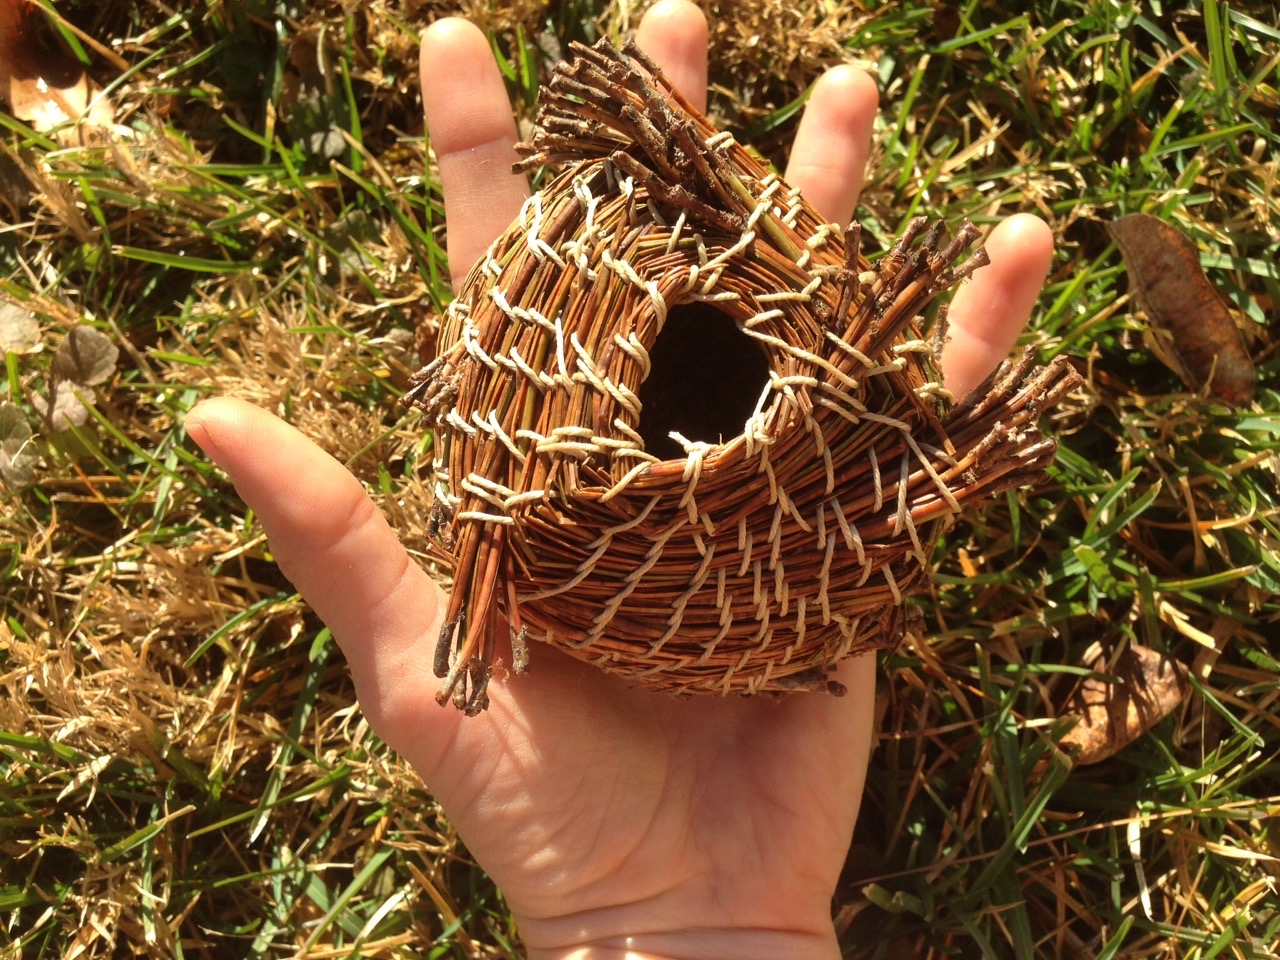 Pine needle basketry created in handicrafts class